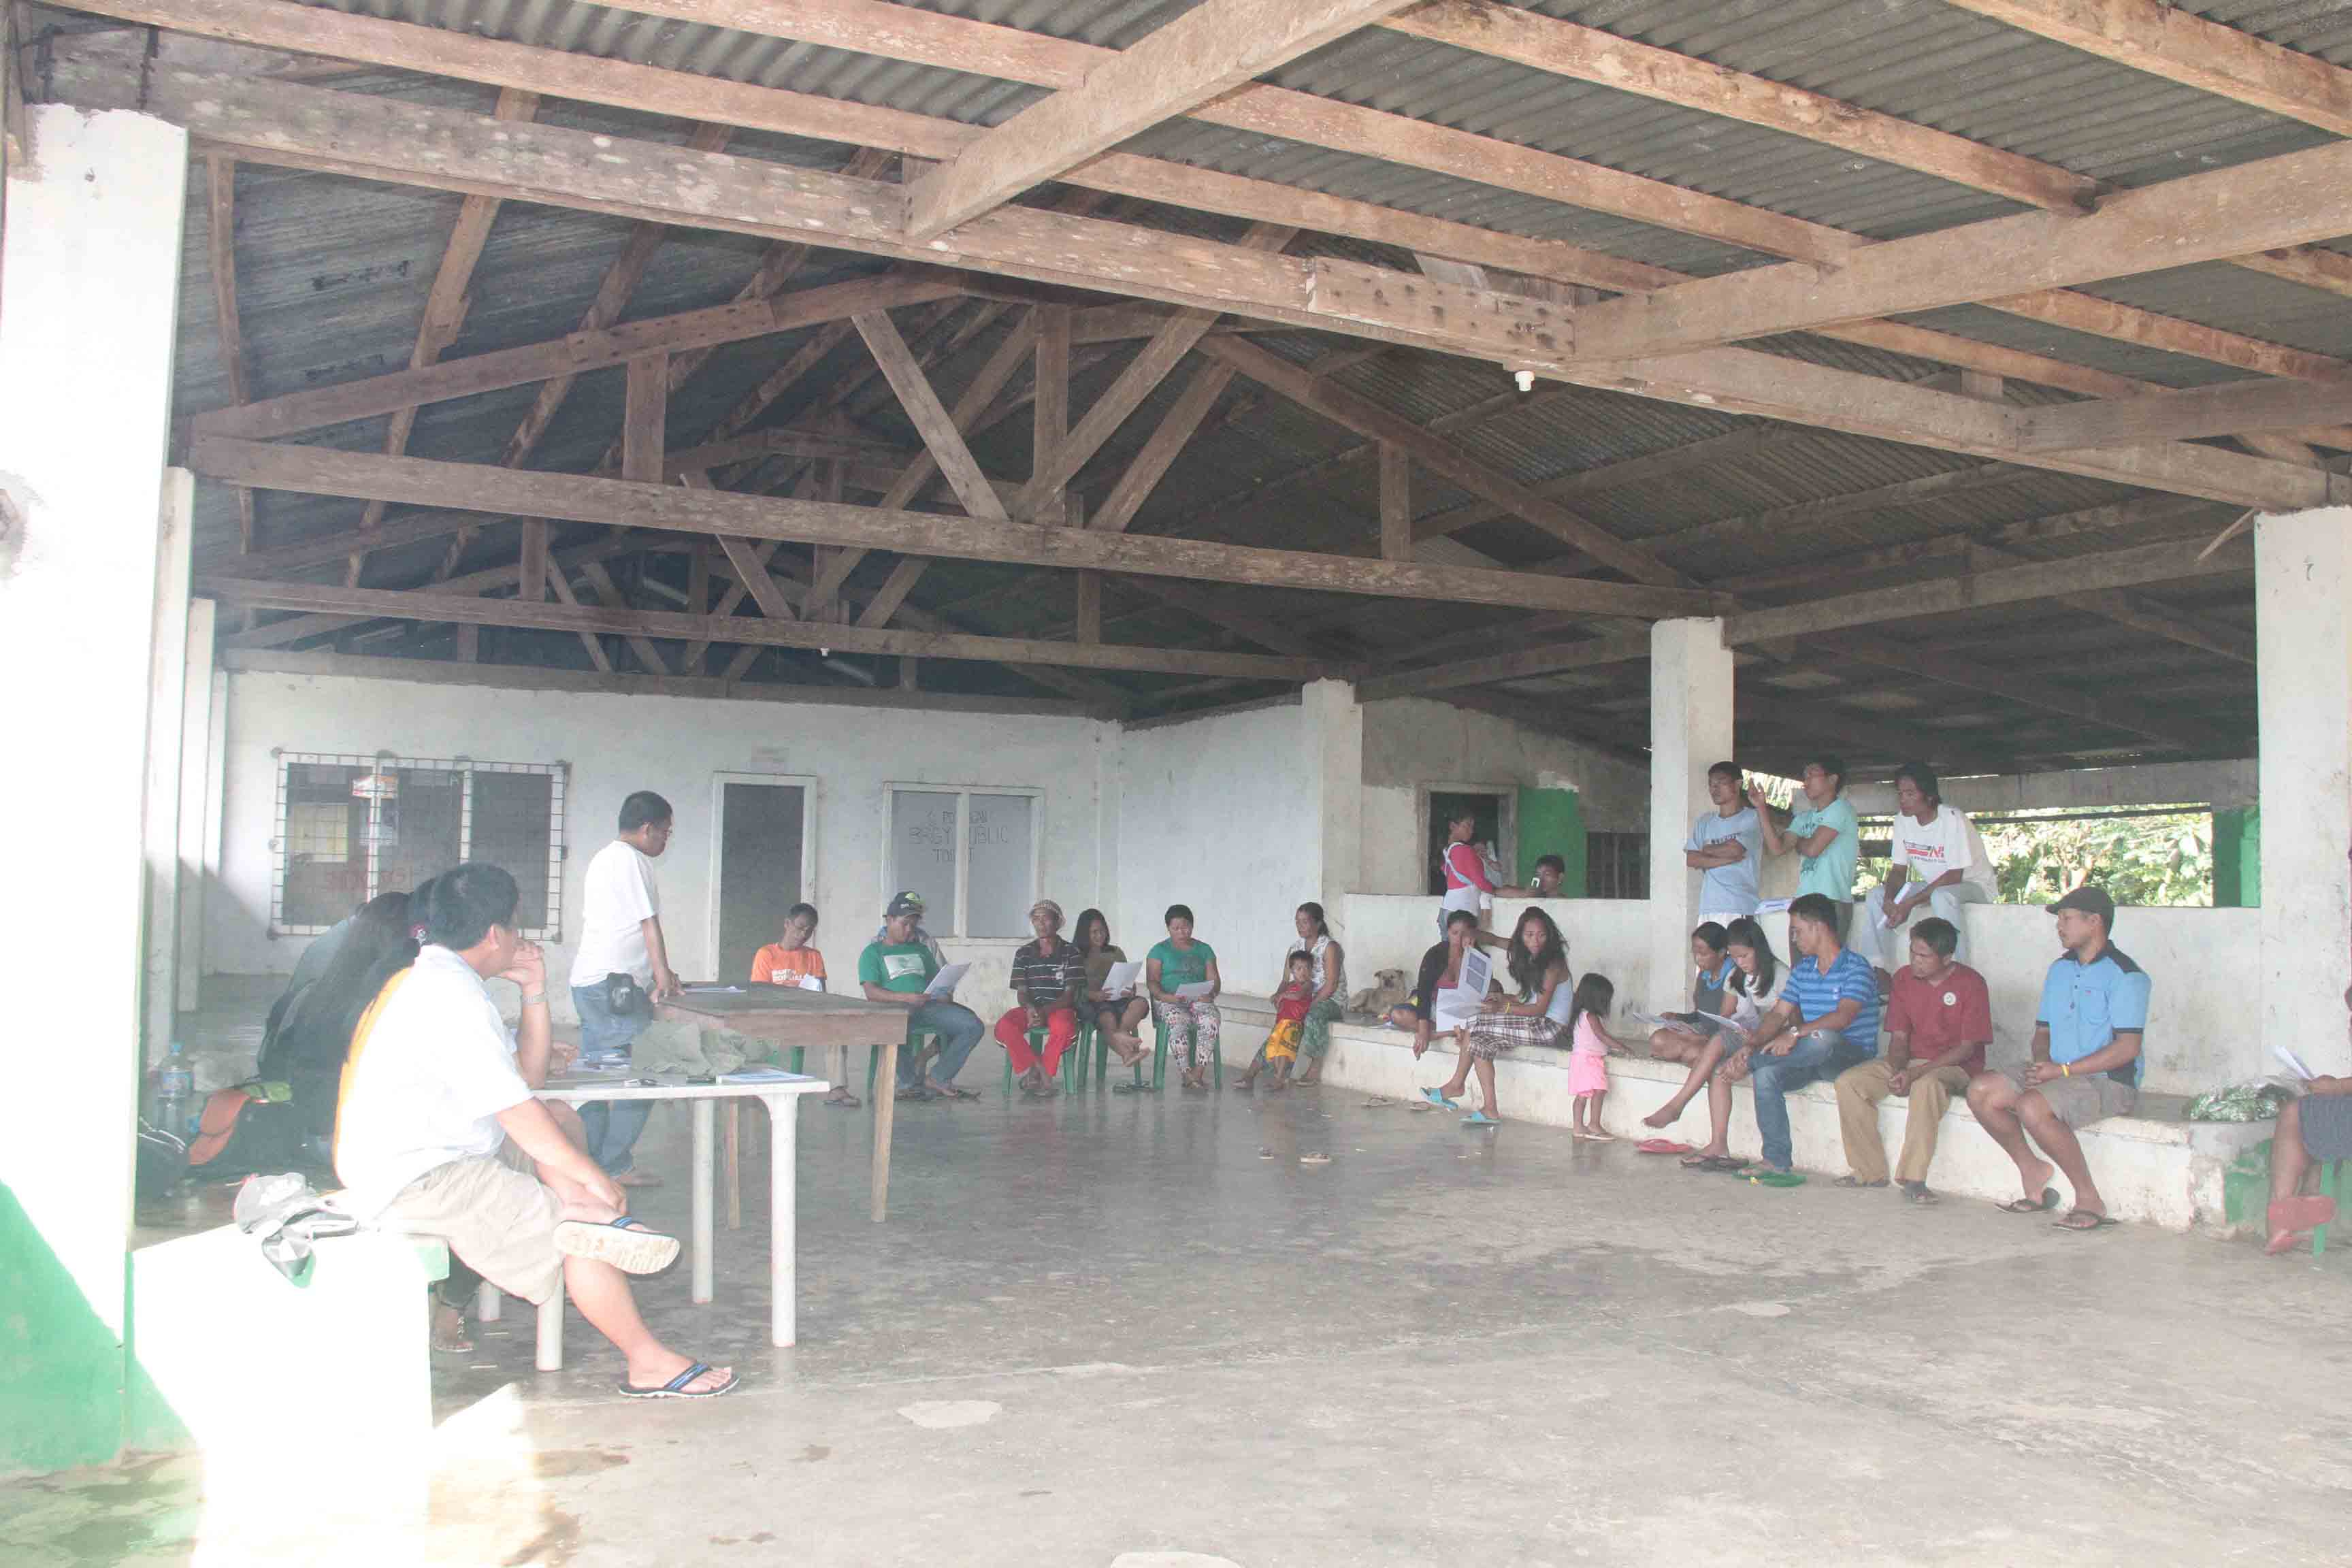 thephotos/2016/Community Dialogue (Small Potongan)(June 14, 2016)/IMG_3025.jpg